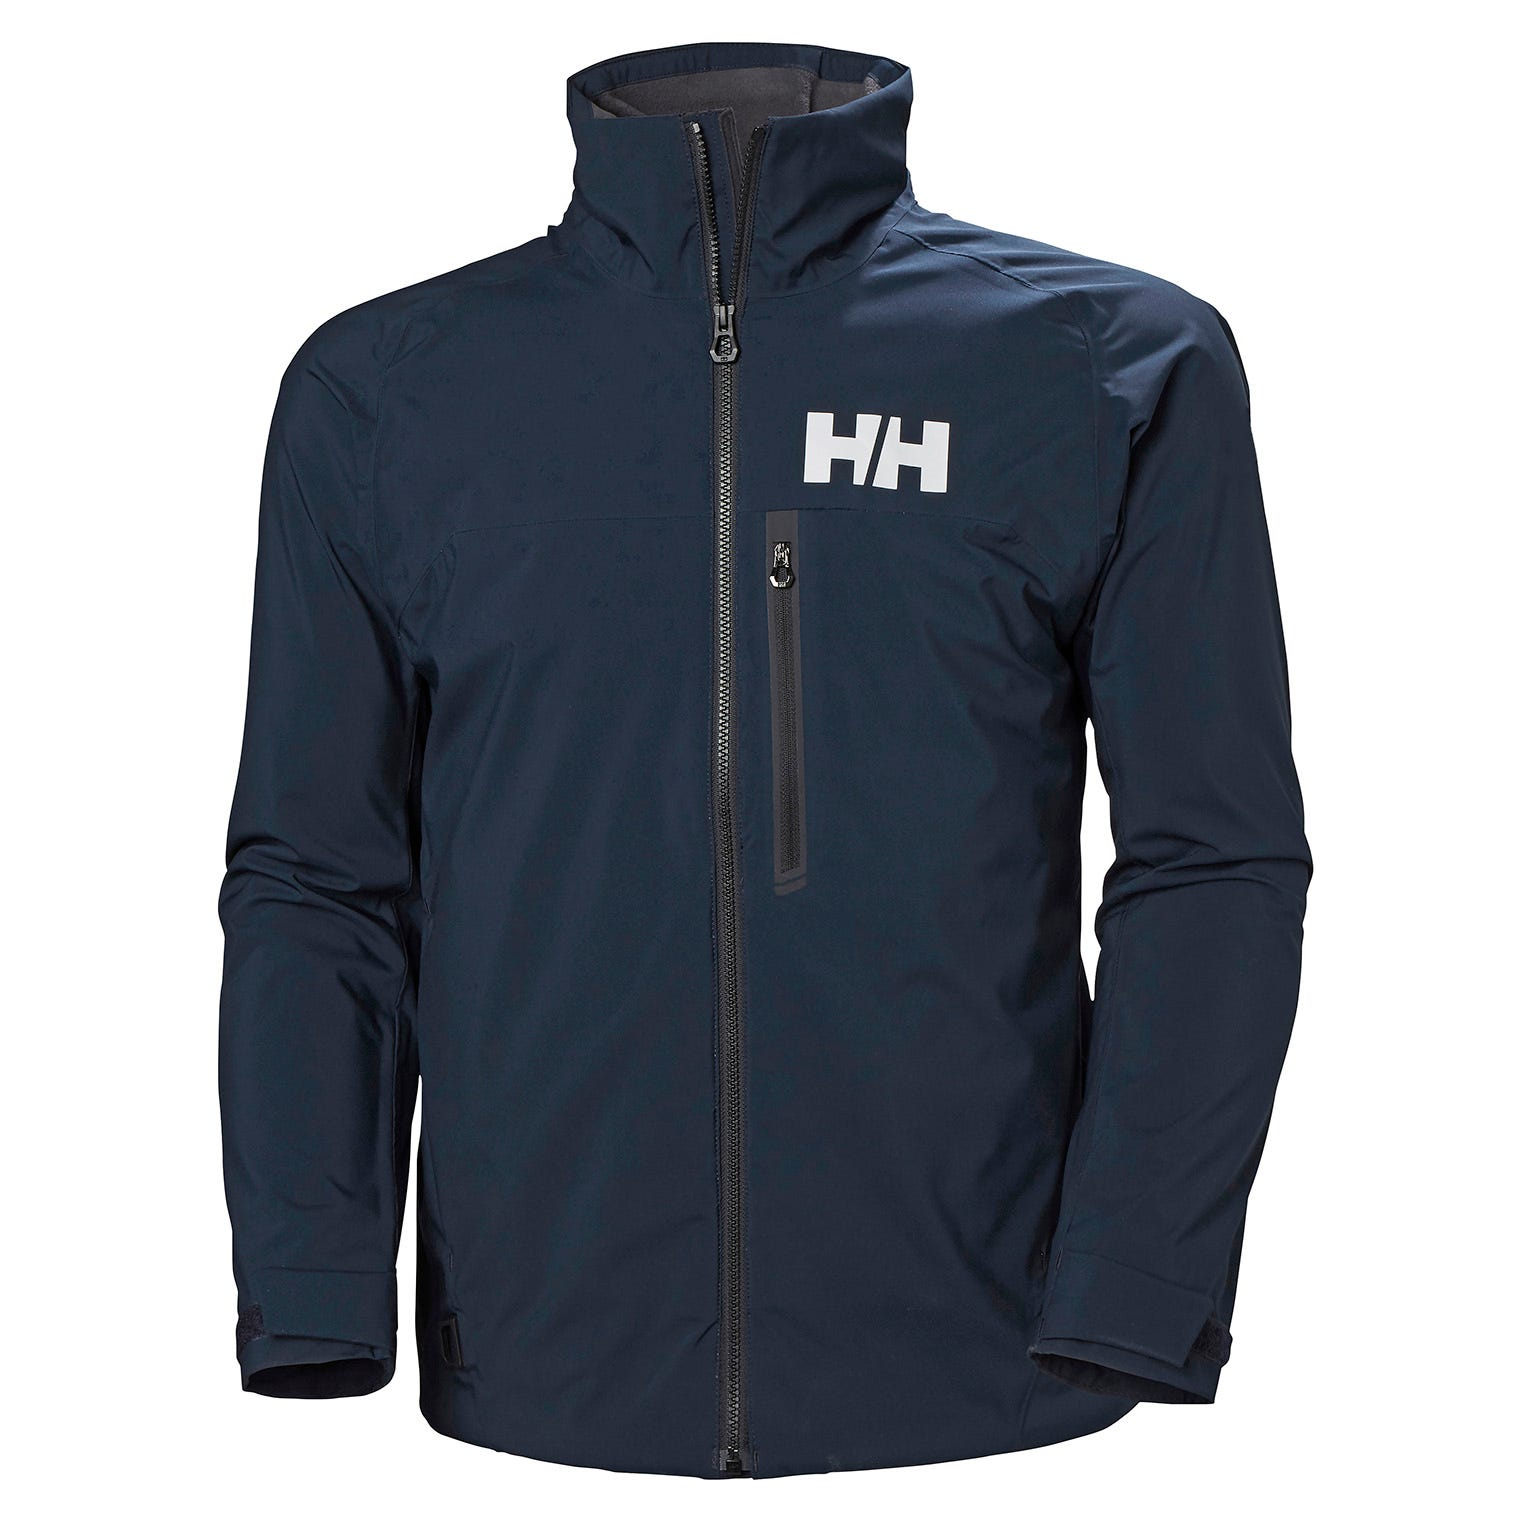 Helly Hansen Mens Hp Racing Midlayer Sailing Jacket Navy XL